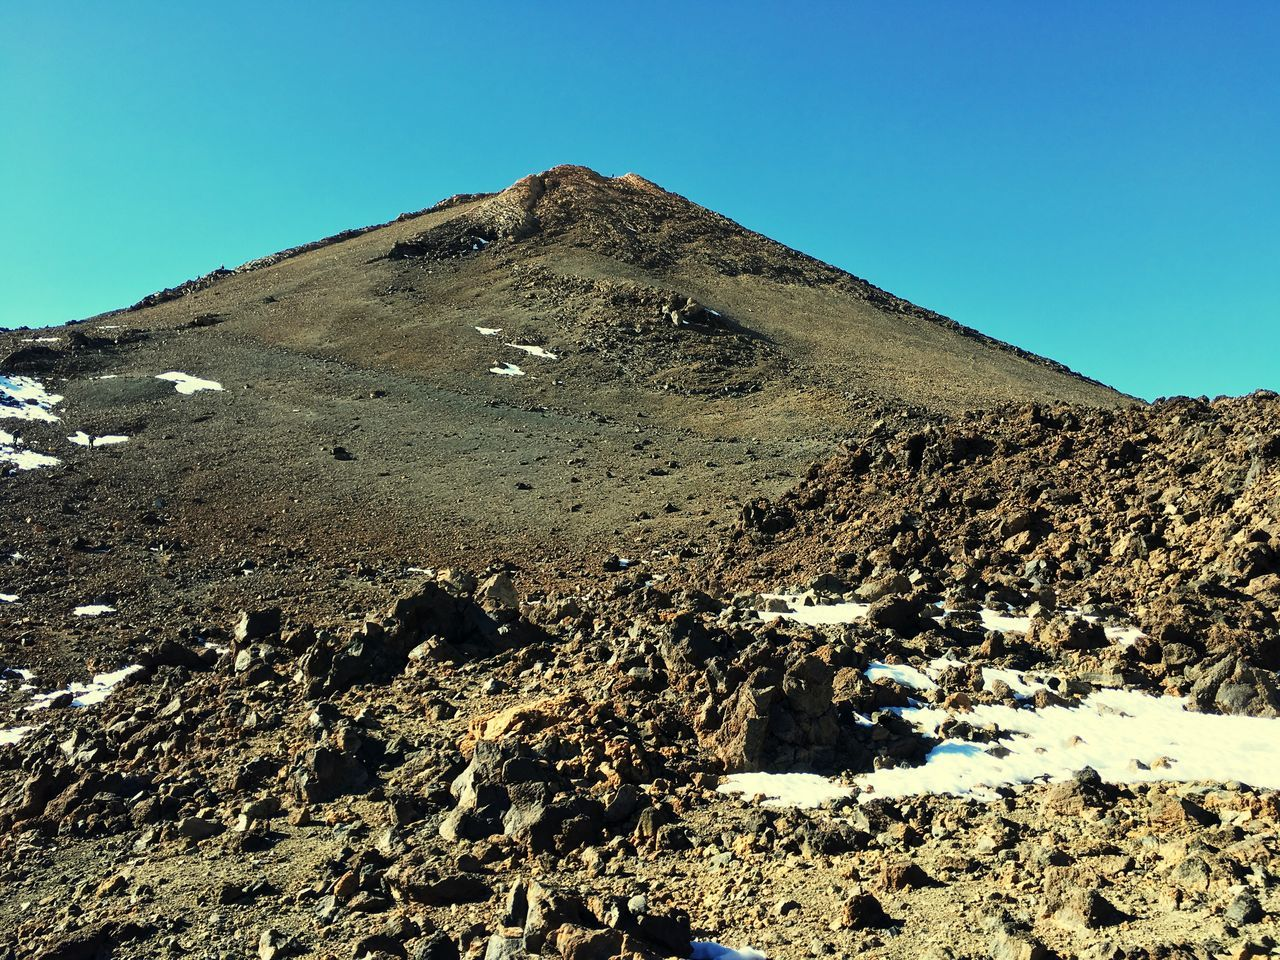 Clear Sky Nature Blue Tranquility Tranquil Scene Outdoors Non-urban Scene Landscape Day Desert Volcanic Landscape Volcano National Park Pico de El Teide Peak Of The Volcano Scenics Beauty In Nature No People Arid Climate Mountain Sky